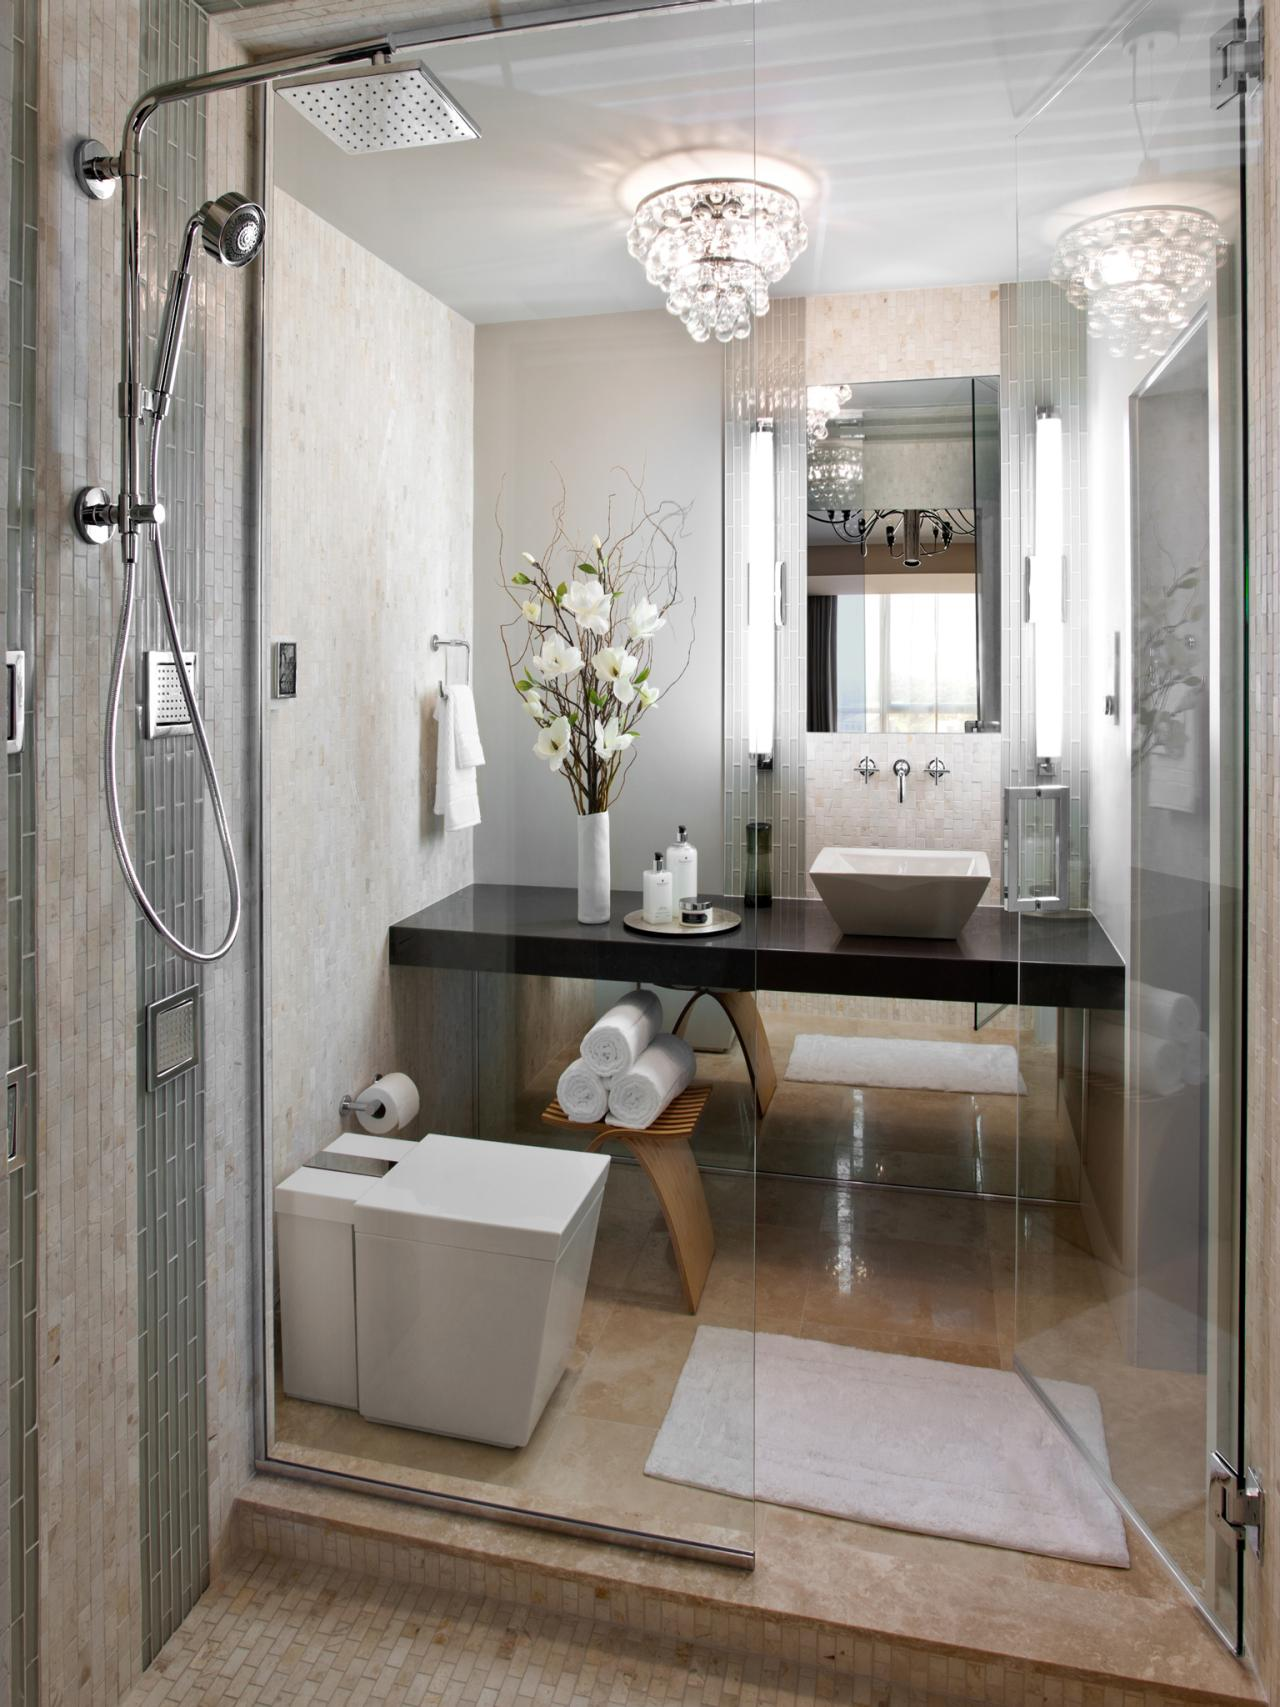 A sleek space with furnishings pared down the master bathroom invites relaxation a 6 foot - Pictures of small bathrooms ...